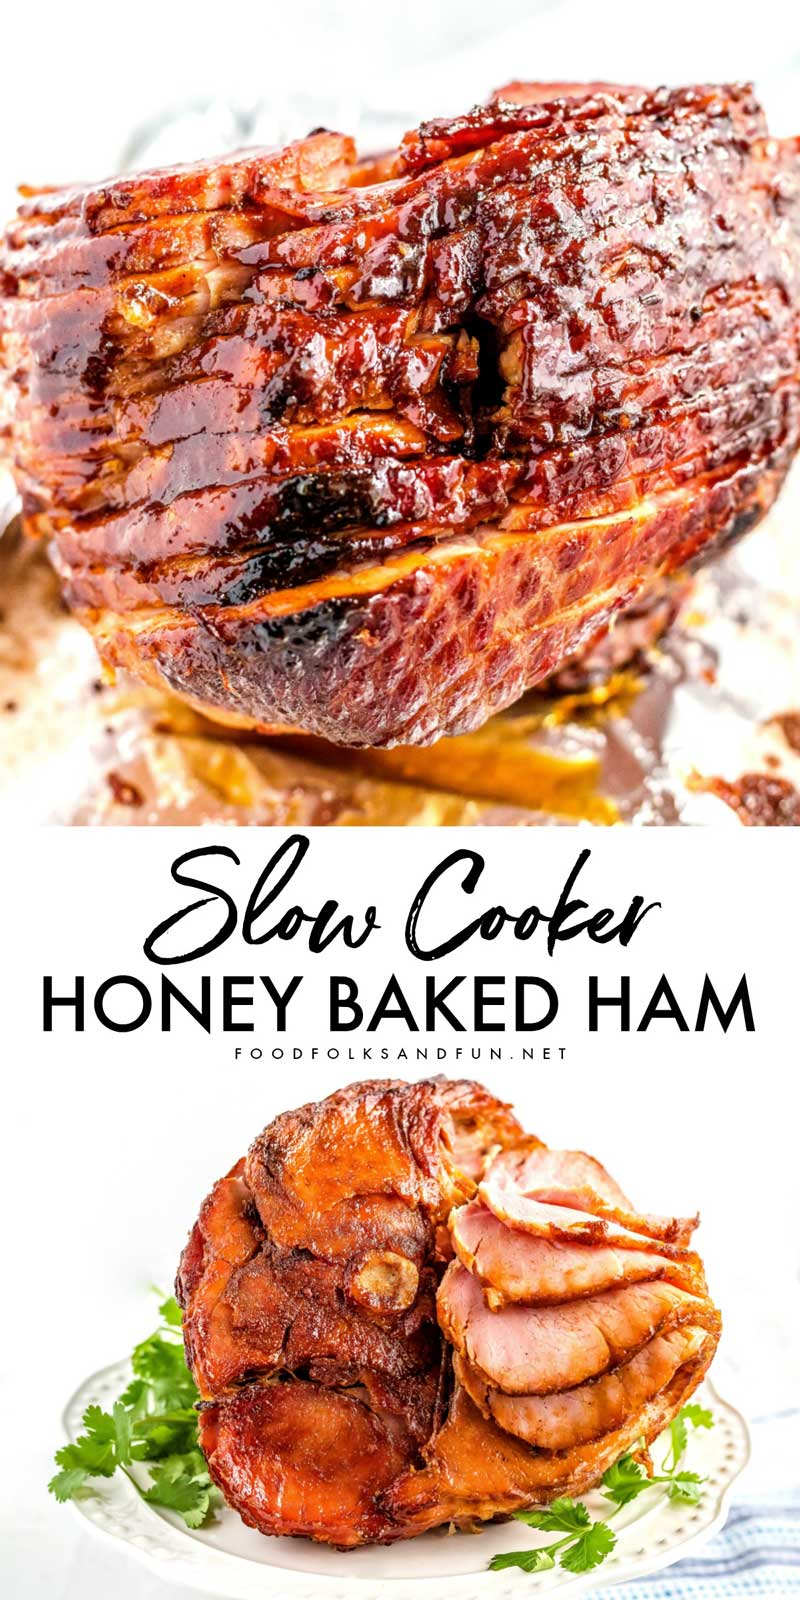 This Slow Cooker Honey Baked Ham recipe is so succulent, and the ham glaze makes the most incredible crispy-sweet ham edges.  #ham #honeybakedham #slowcooker #crockpot #slowcookerrecipe #crockpotrecipe #Easter #Christmas #EasterRecipe #ChristmasRecipe #foodfolksandfun via @foodfolksandfun